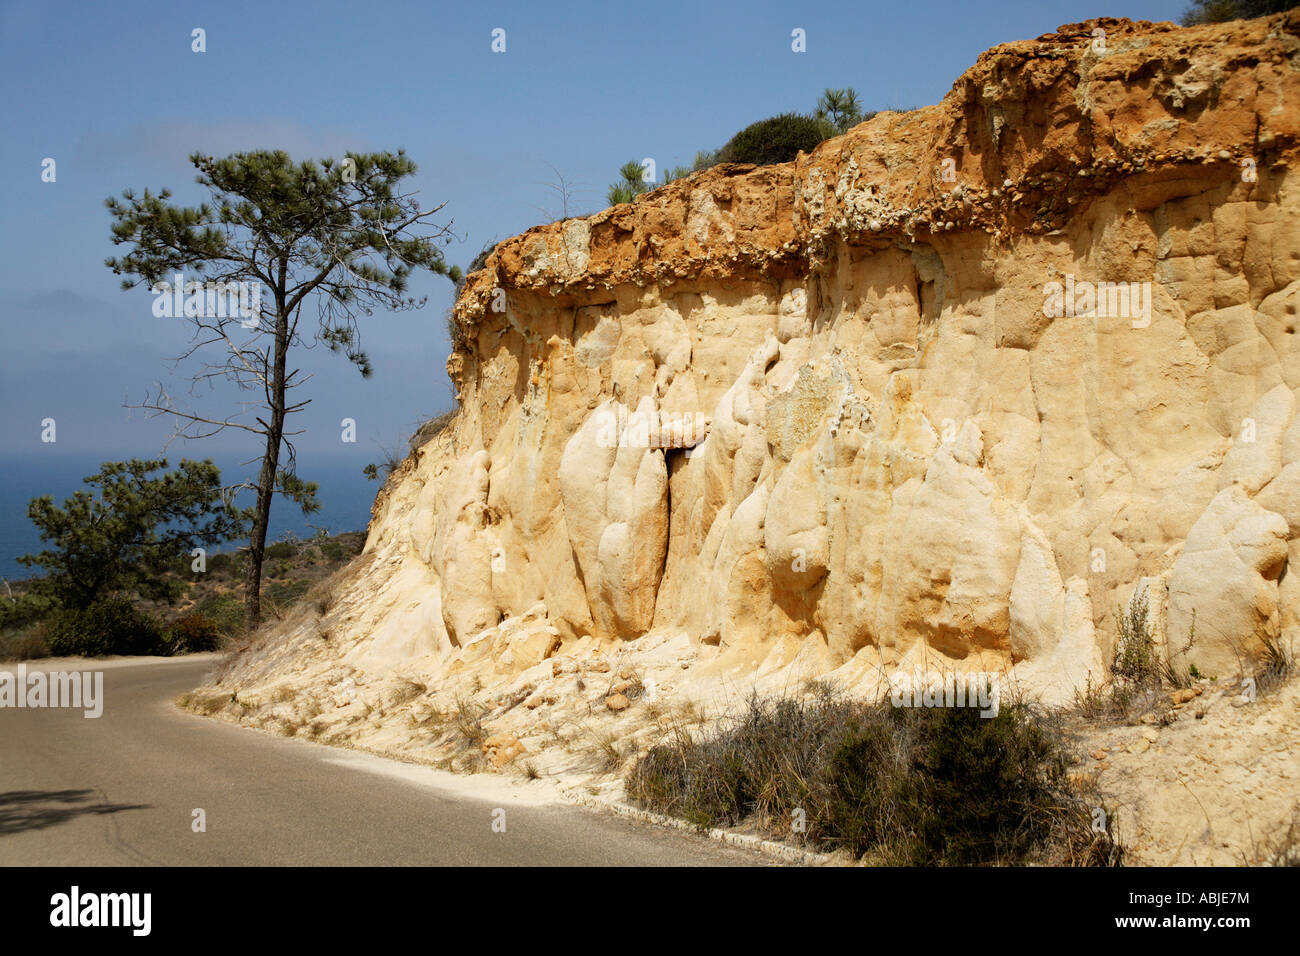 tock Photo of Sculptured Sandstone Cliffs at Torrey Pines State Reserve, CA - Stock Image